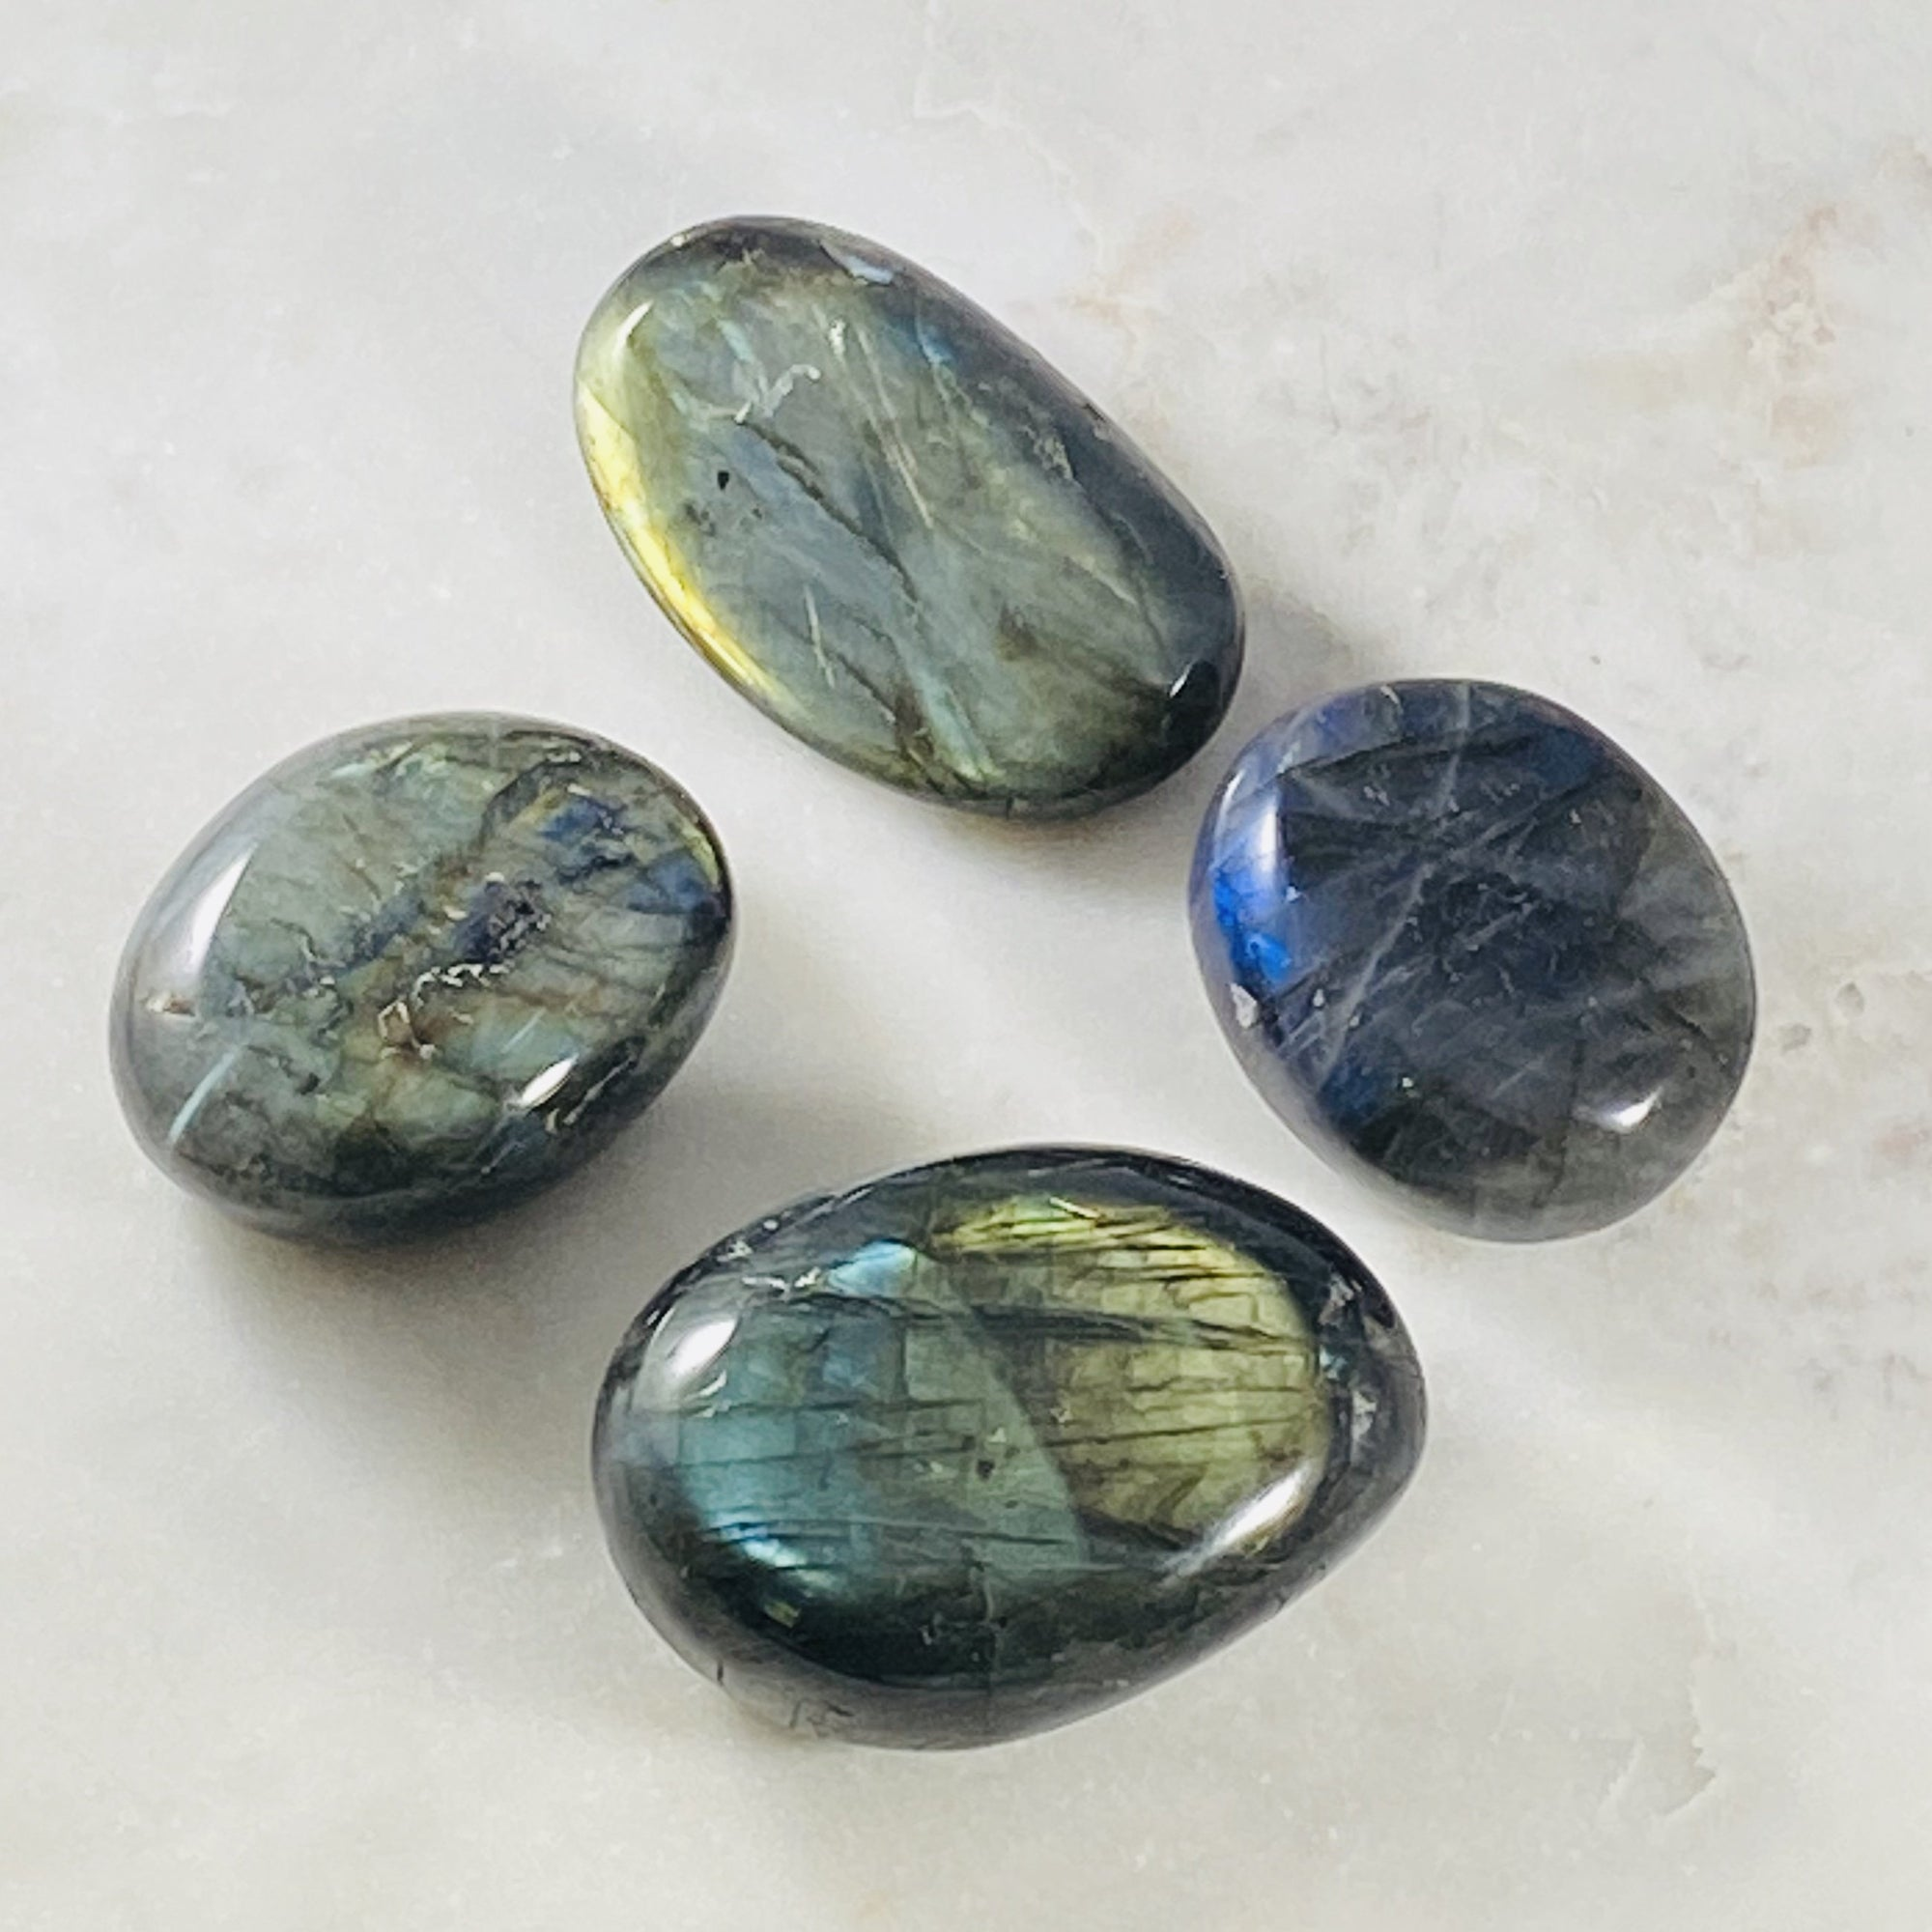 Labradorite palm stone for raising your vibration